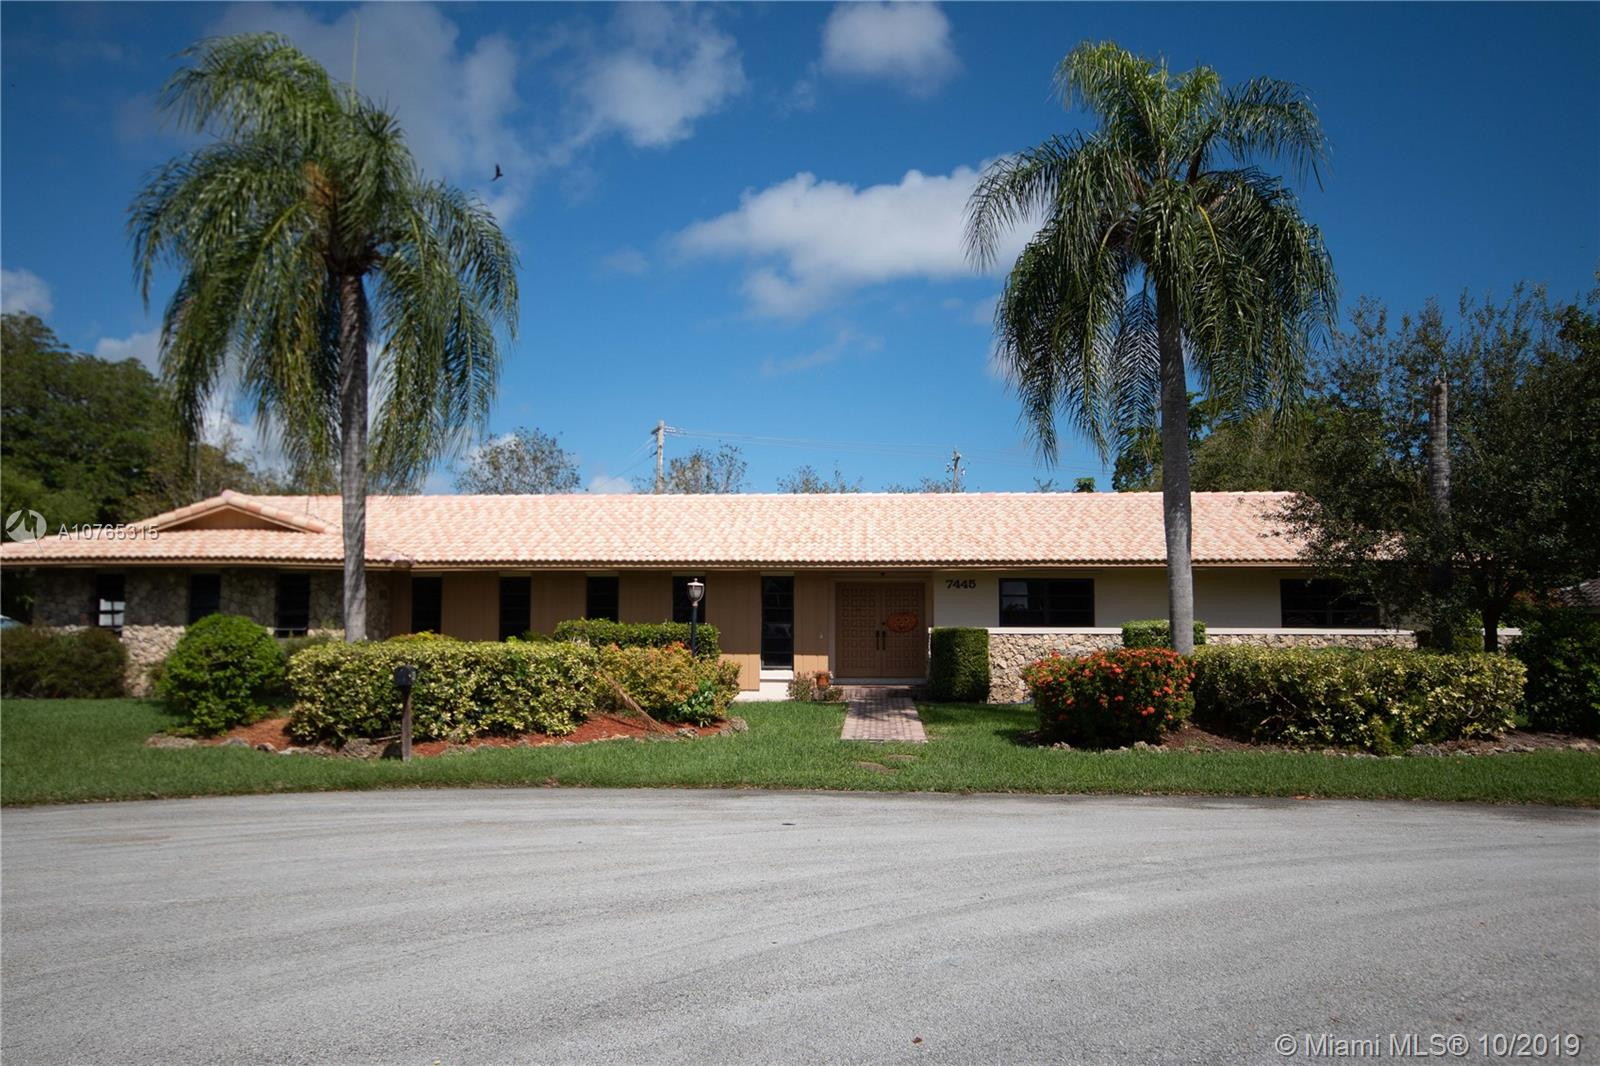 7445 SW 144th Ter, Kendall, Florida